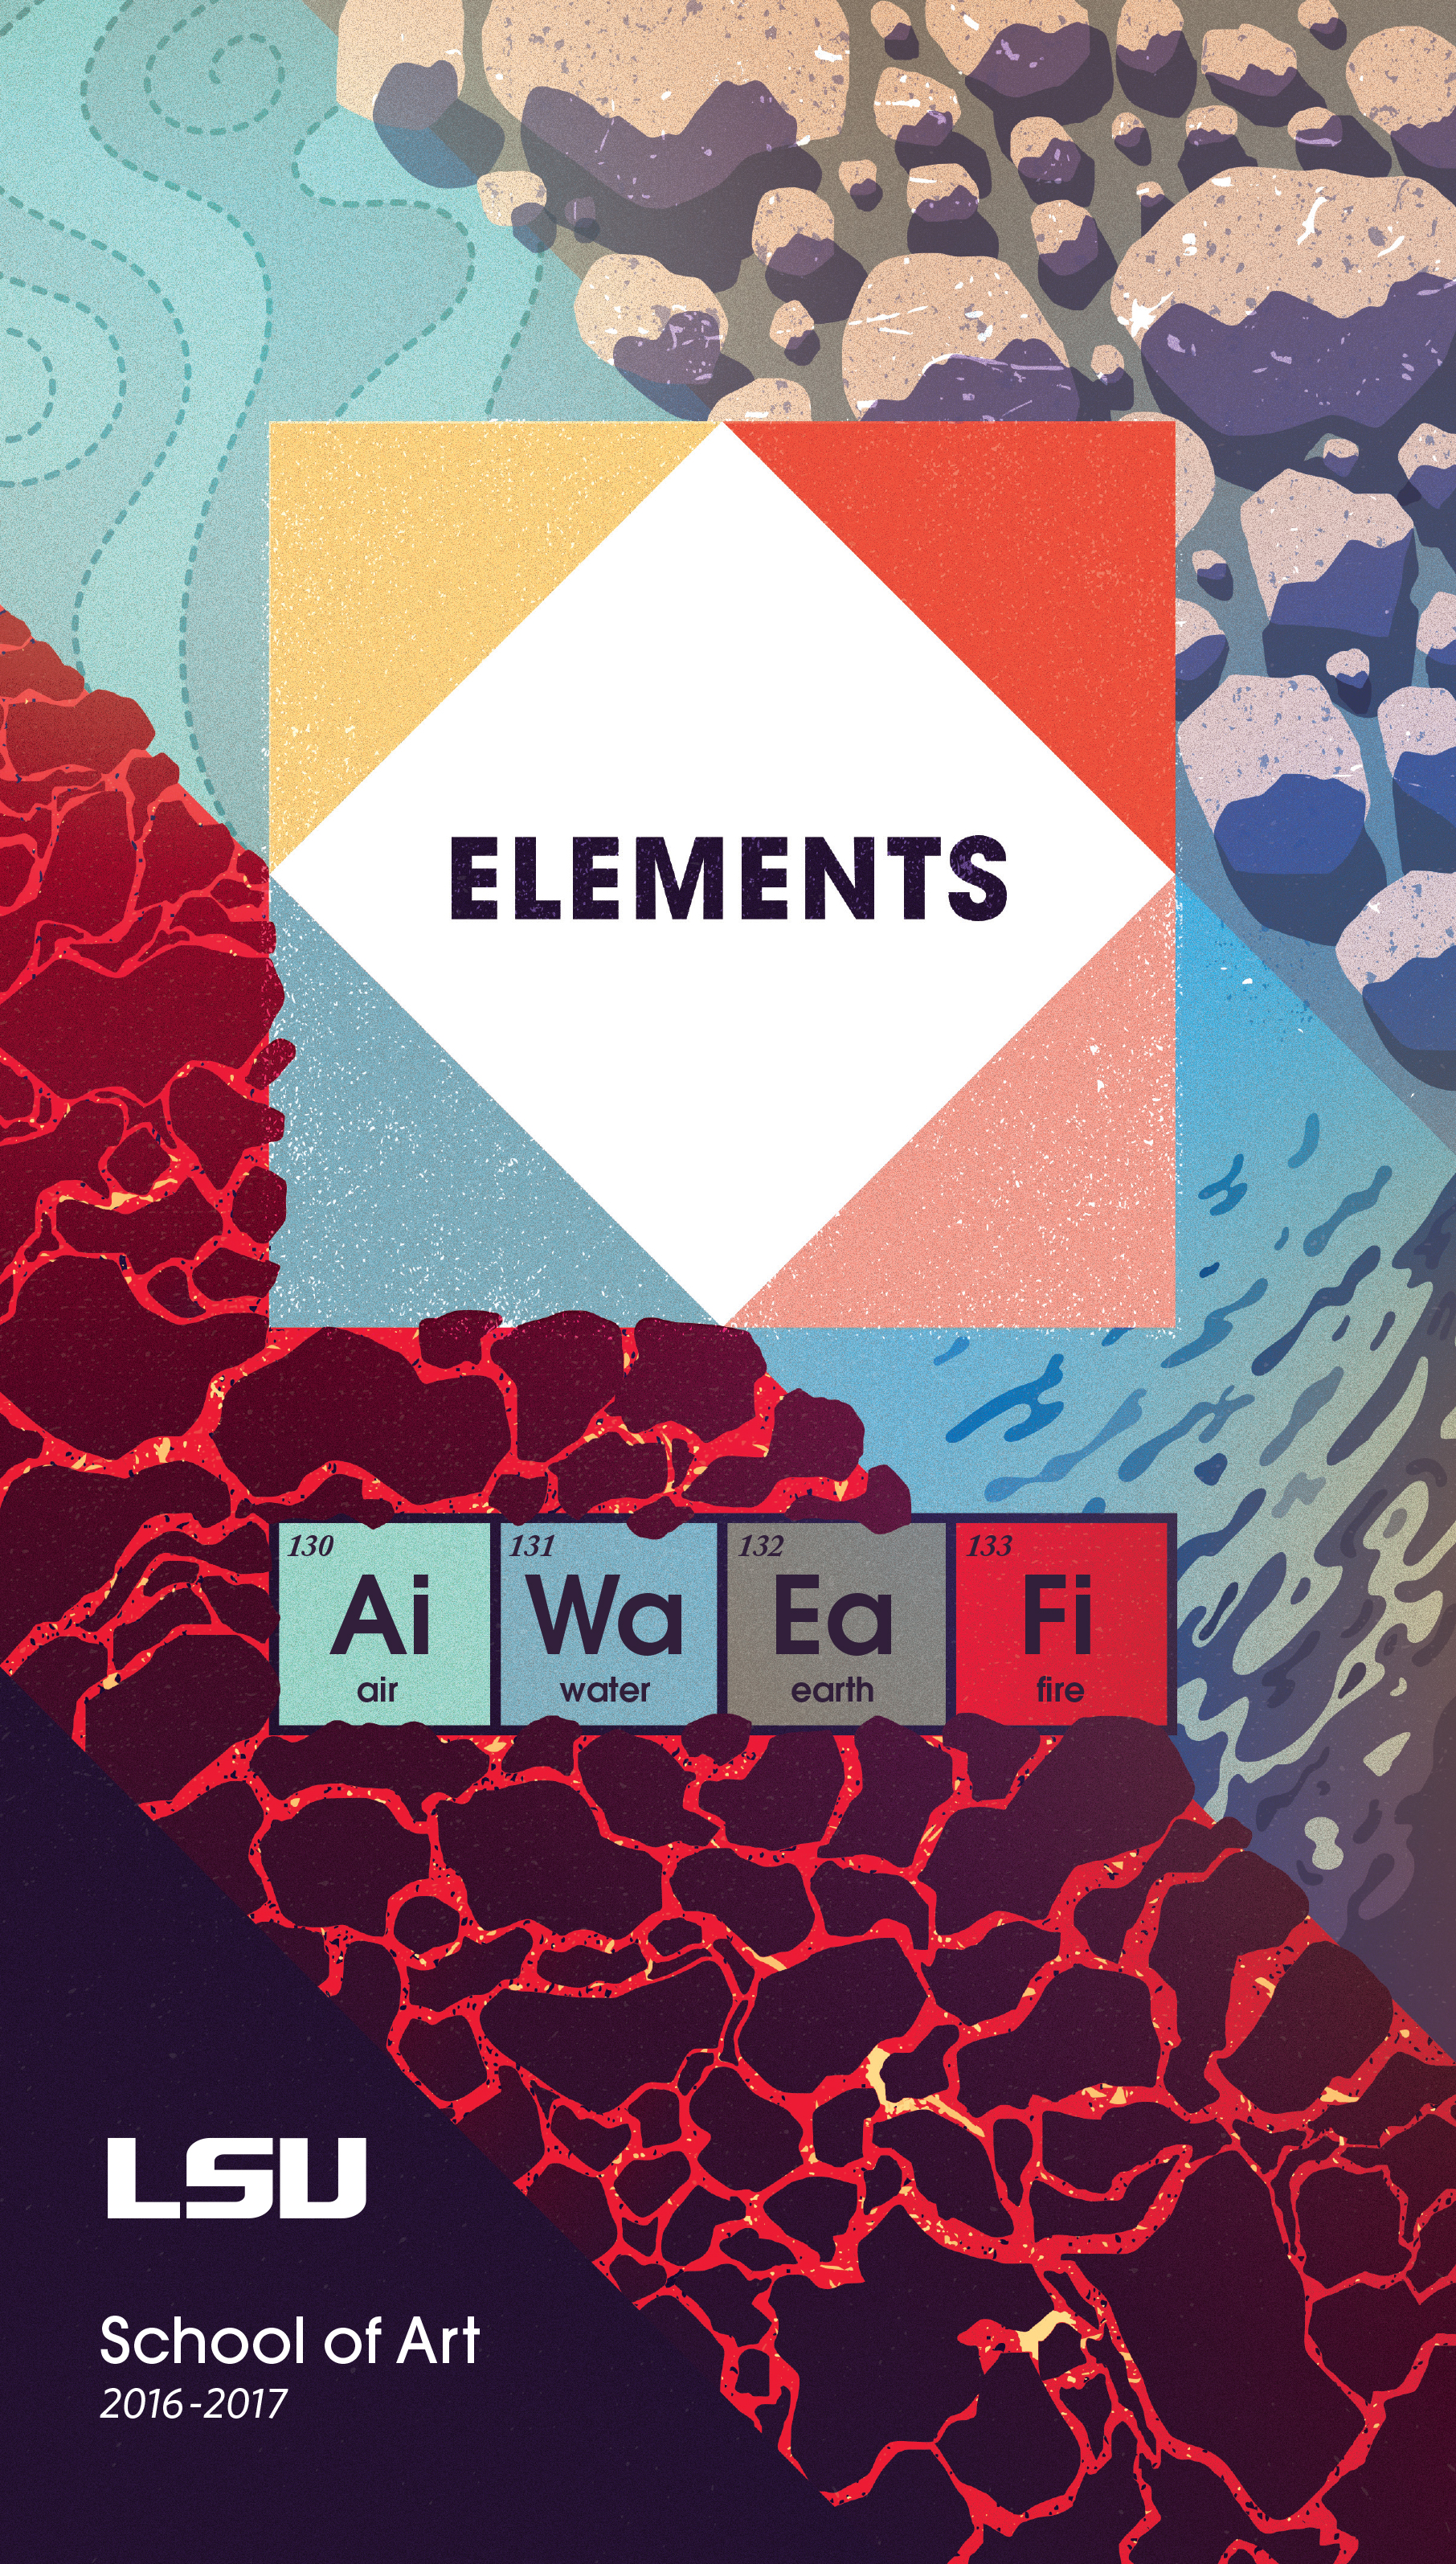 Elements - The invited artists and scholars approach the theme of Elements in diverse ways that include examinations of elemental forces at play in nature and politics.The topic for the series changes every year, and for the 16/17 year it was elements. The board of directors was open as to what approach could be taken so I merged the ancient concept of earth, wind, water, and fire with the concept of the periodic element table. The physical elements were used as illustrative devices while the periodic table was used for typographic detail processes and movements.